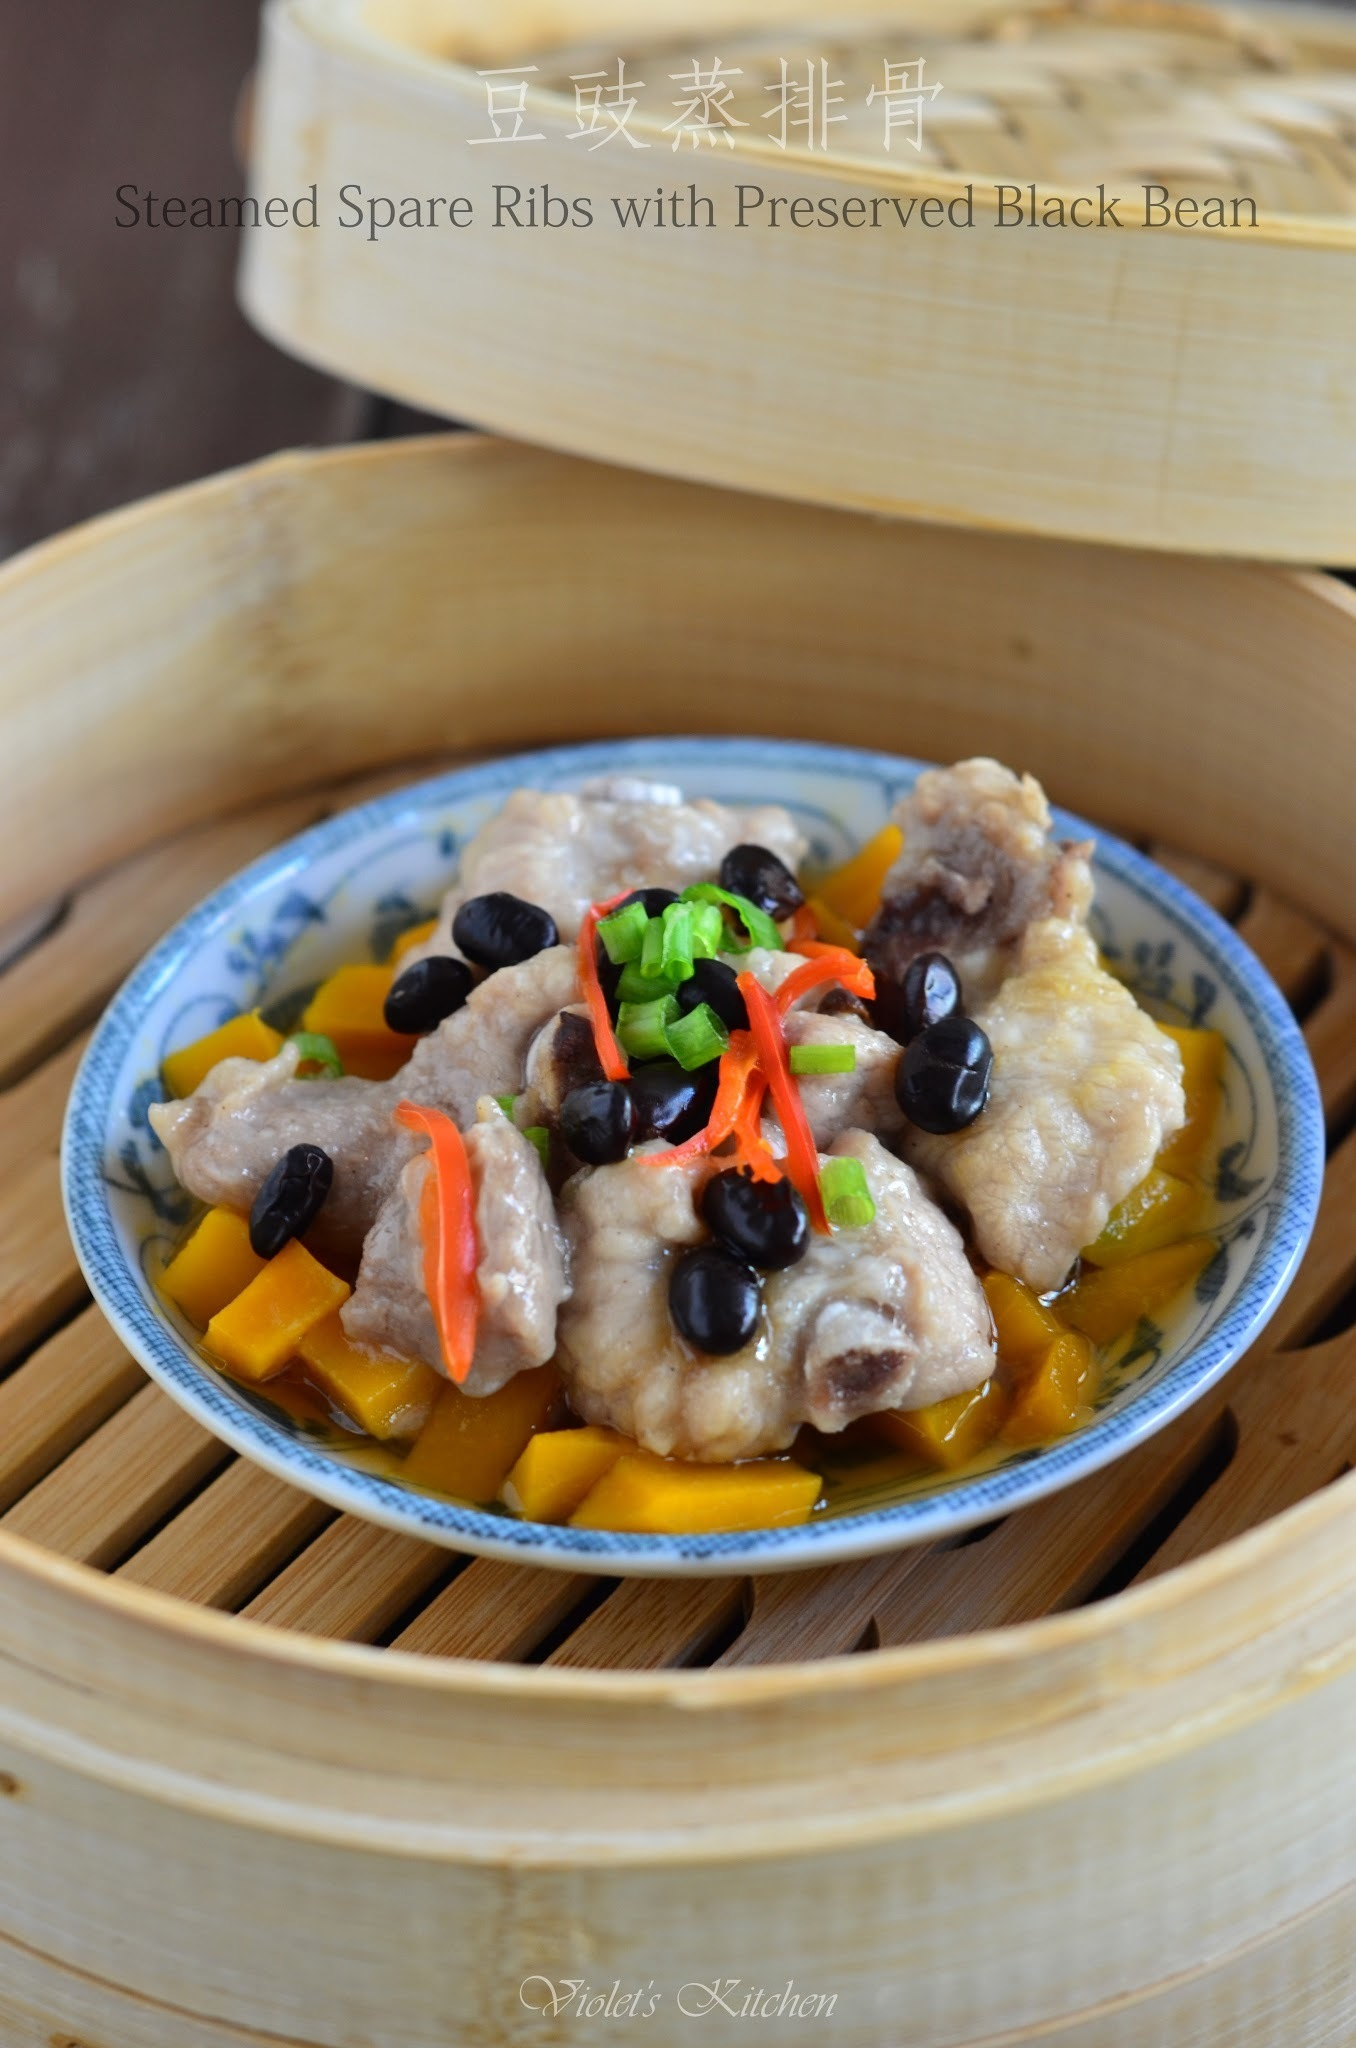 豆豉蒸排骨 Steamed Spare Ribs with Preserved Black Bean